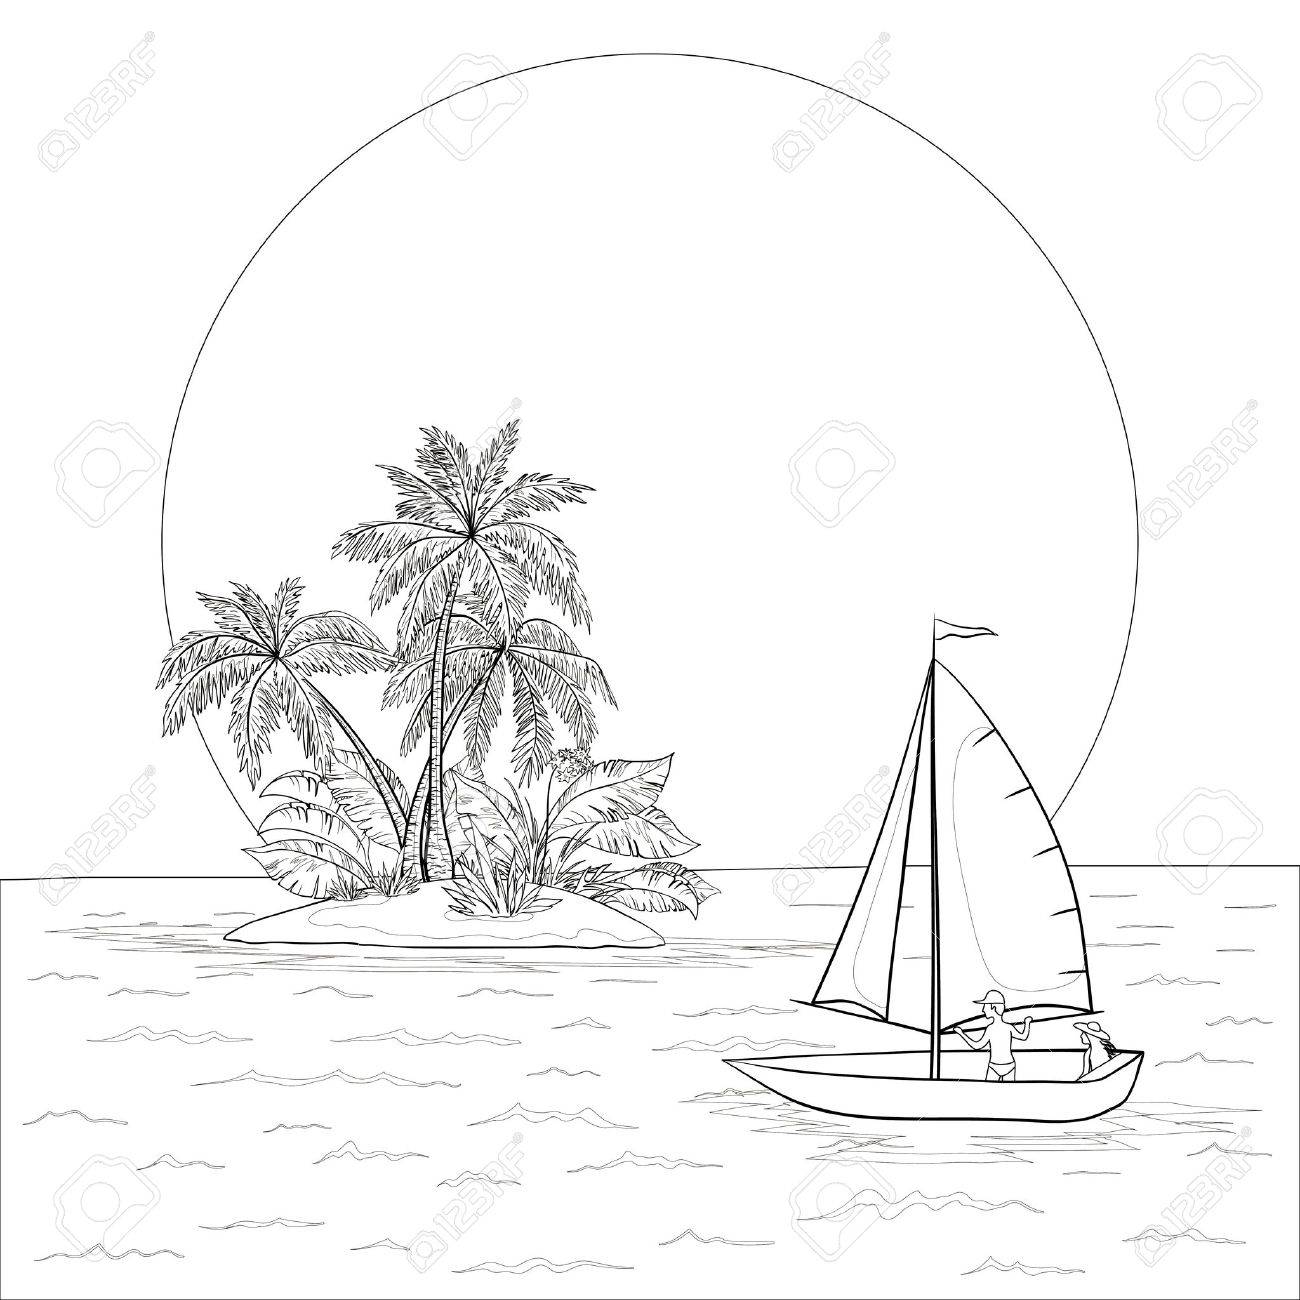 Boat In Water Drawing At Getdrawings